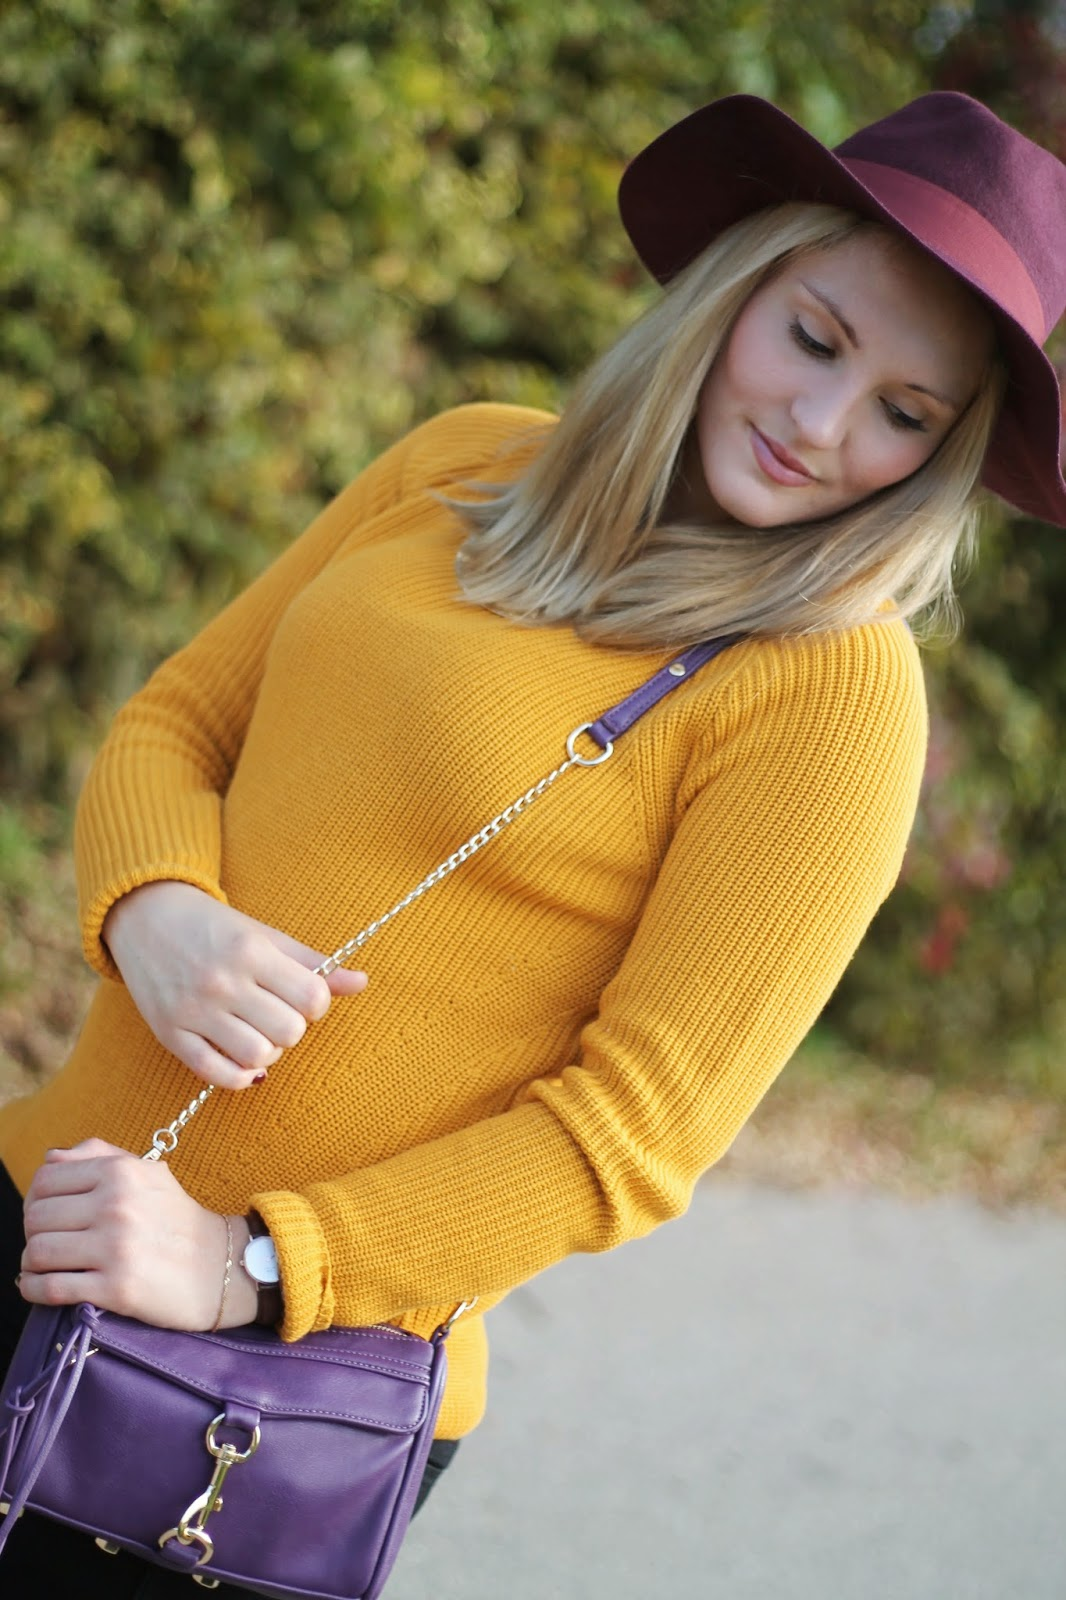 Fashionblogger Austria / Österreich / Deutsch / German / Kärnten / Carinthia / Klagenfurt / Köttmannsdorf / Spring Look / Classy / Edgy / Autumn / Autumn Style 2014 / Autumn Look / Fashionista Look / Senfgelb Pullover New Yorker Sweater Yellow / Bordeaux Rot Red Hat Zalando Dorothy Perkins / Rebecca Minkoff Look A Like Lilac Violett Bag Purse Oasap / Black Skinny Jeans H&M / Golden Statement Necklace / Black Schwarze Chelsea Boots /